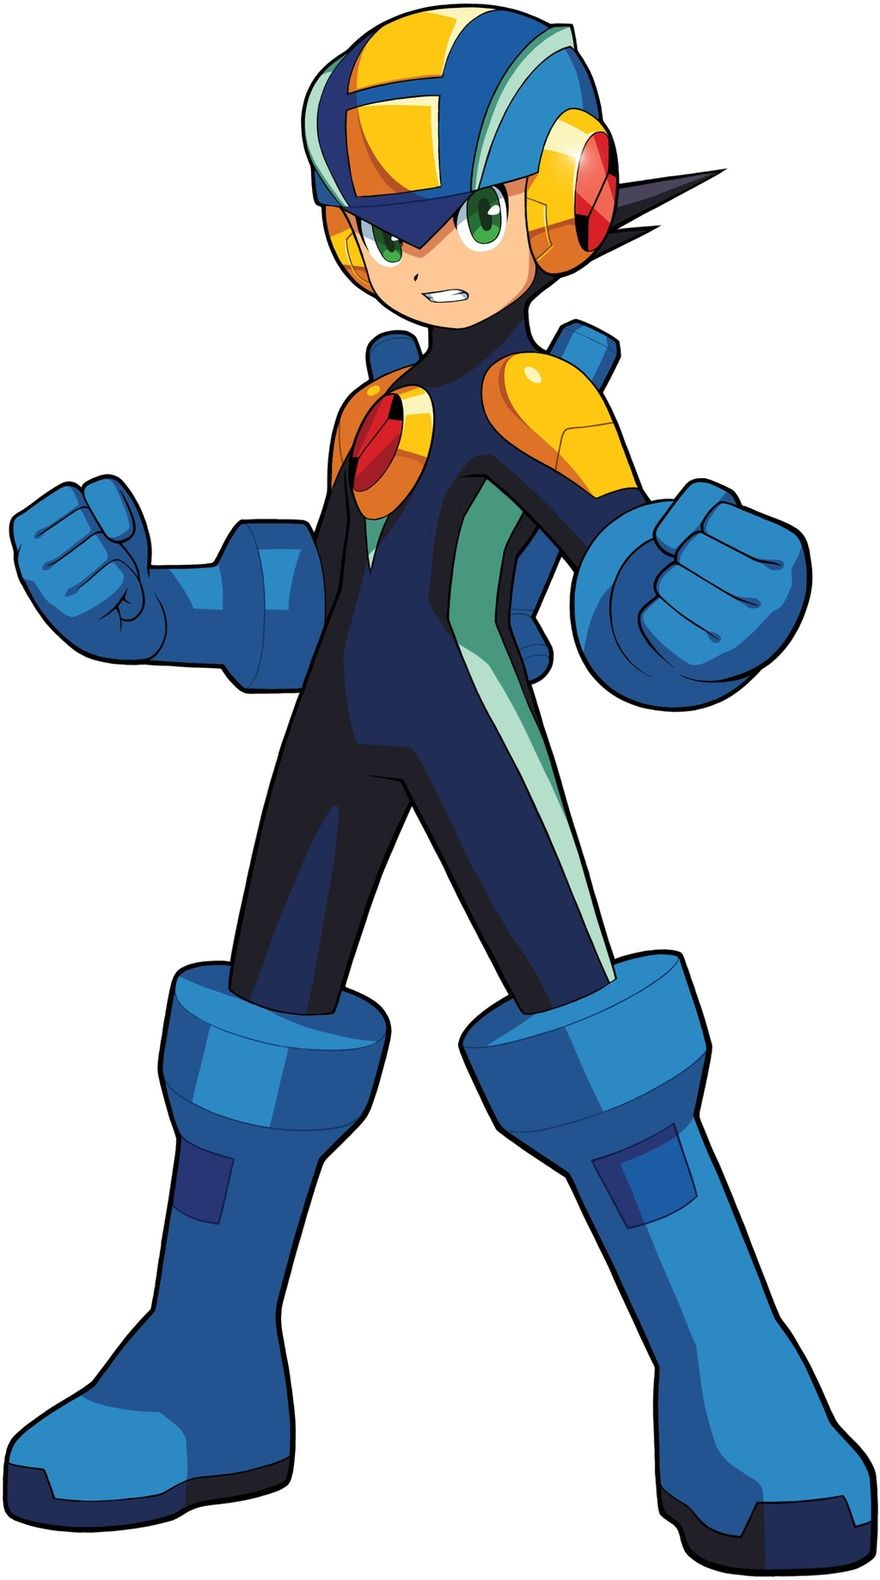 I don't know about you but I always wish a Megaman